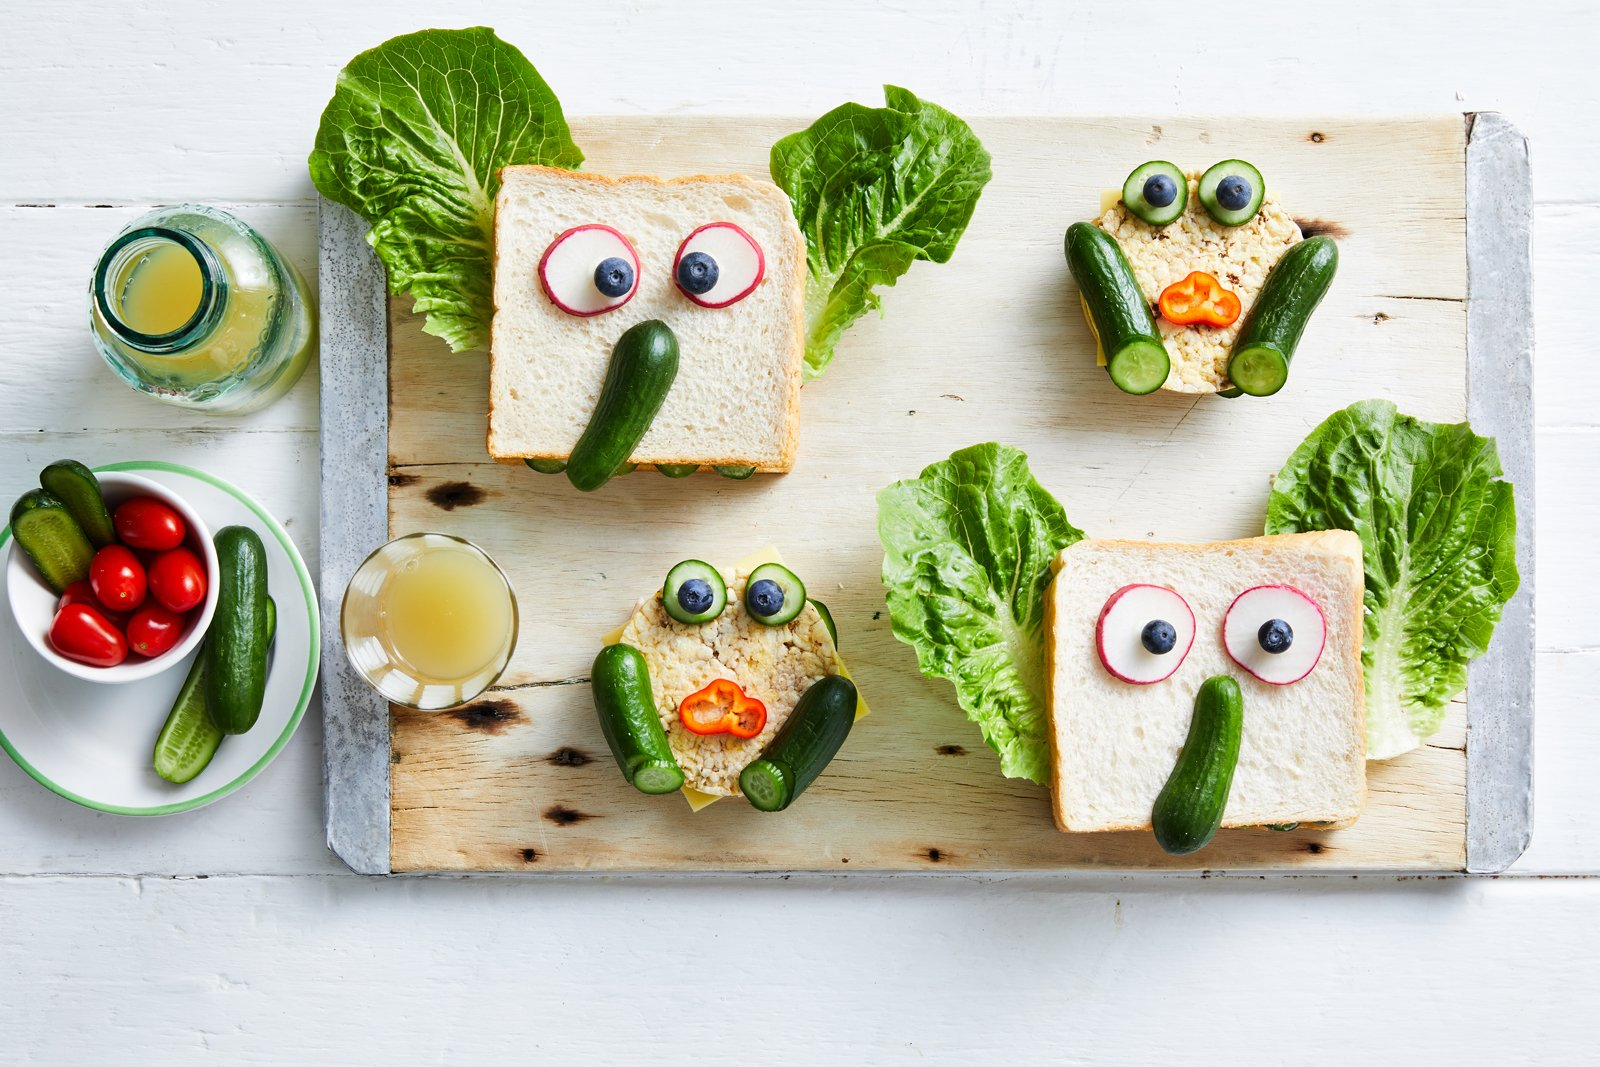 Recipe_LR_Qukes_Funny Face Animal Sandwiches_01_Janelle Bloom_2019